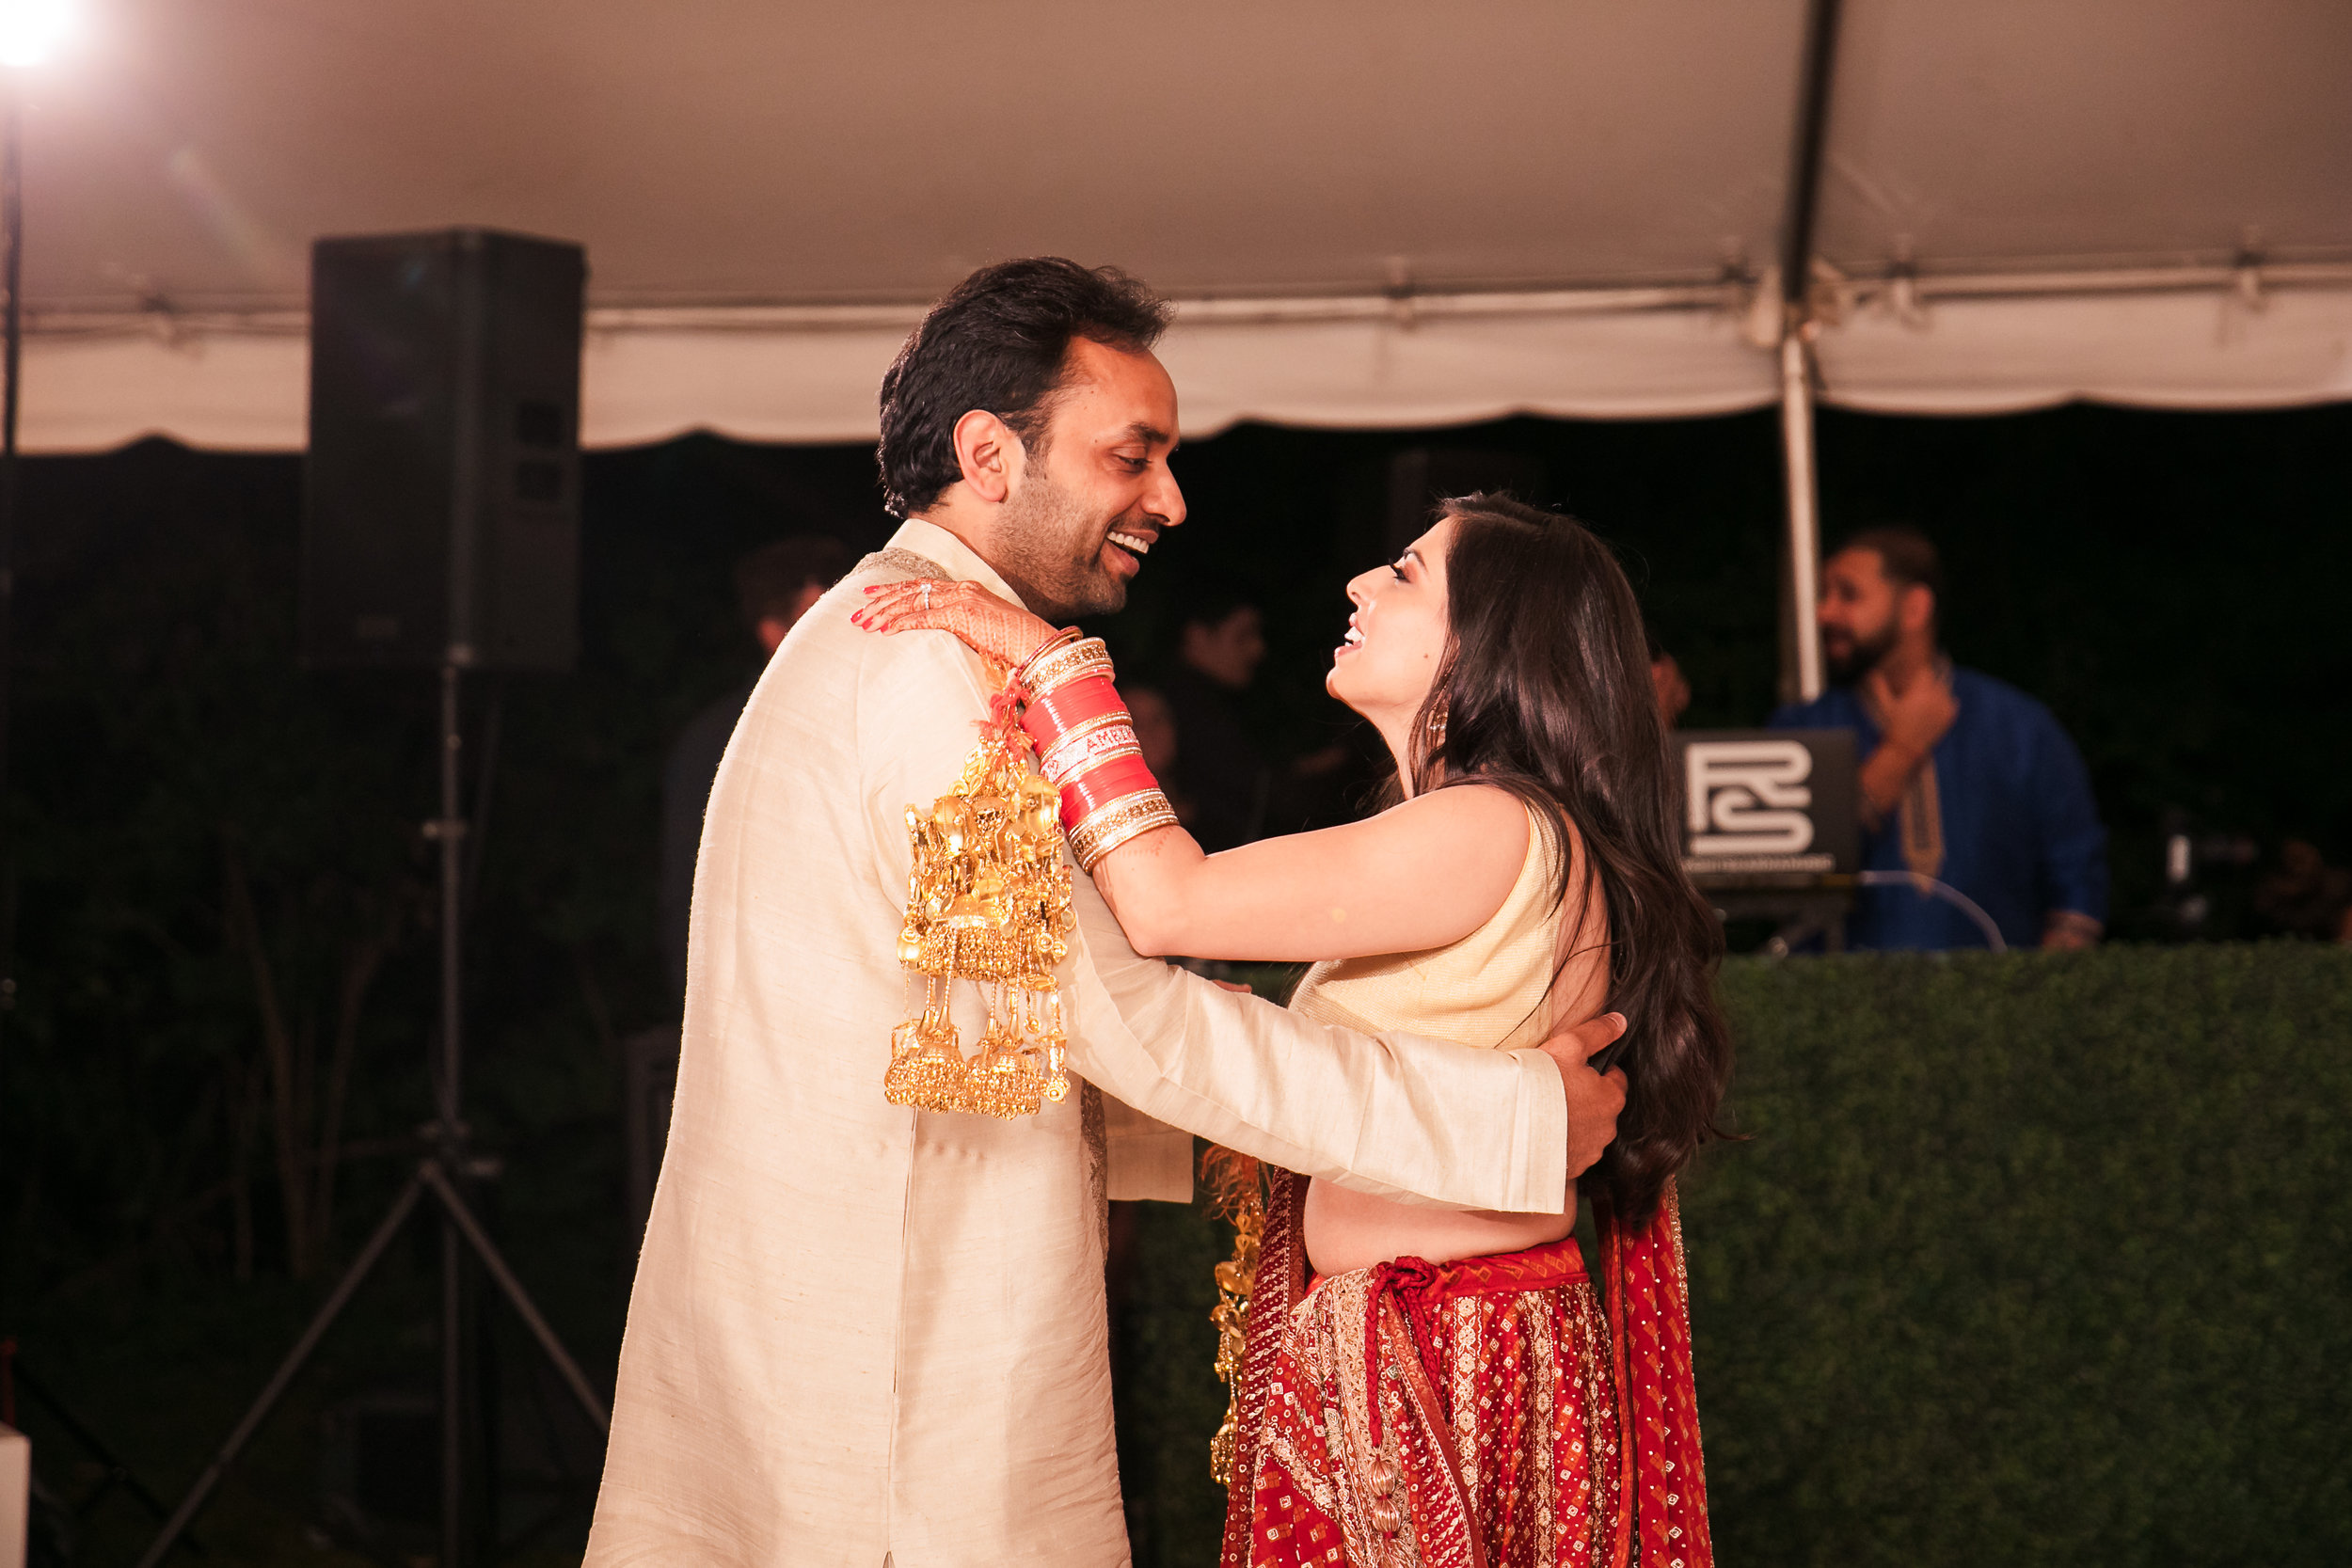 INDIAN WEDDING BRIDE AND GROOM DANCING.jpg